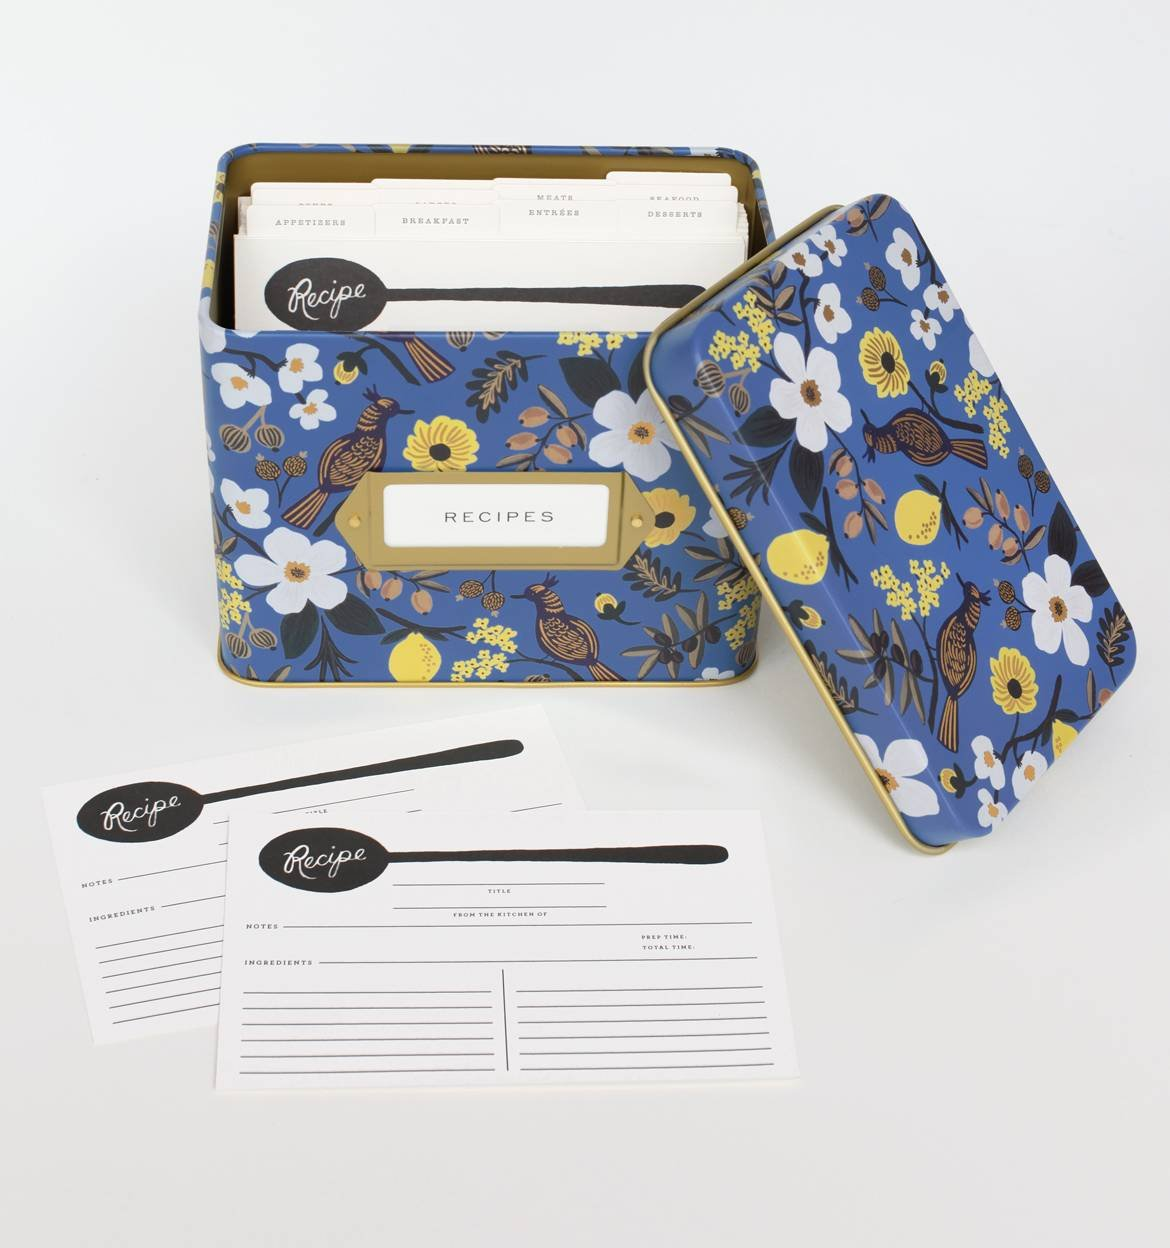 Rifle Paper Co. Capri Blue Recipe File Box With 12 Dividers and 24 Recipe Cards 1